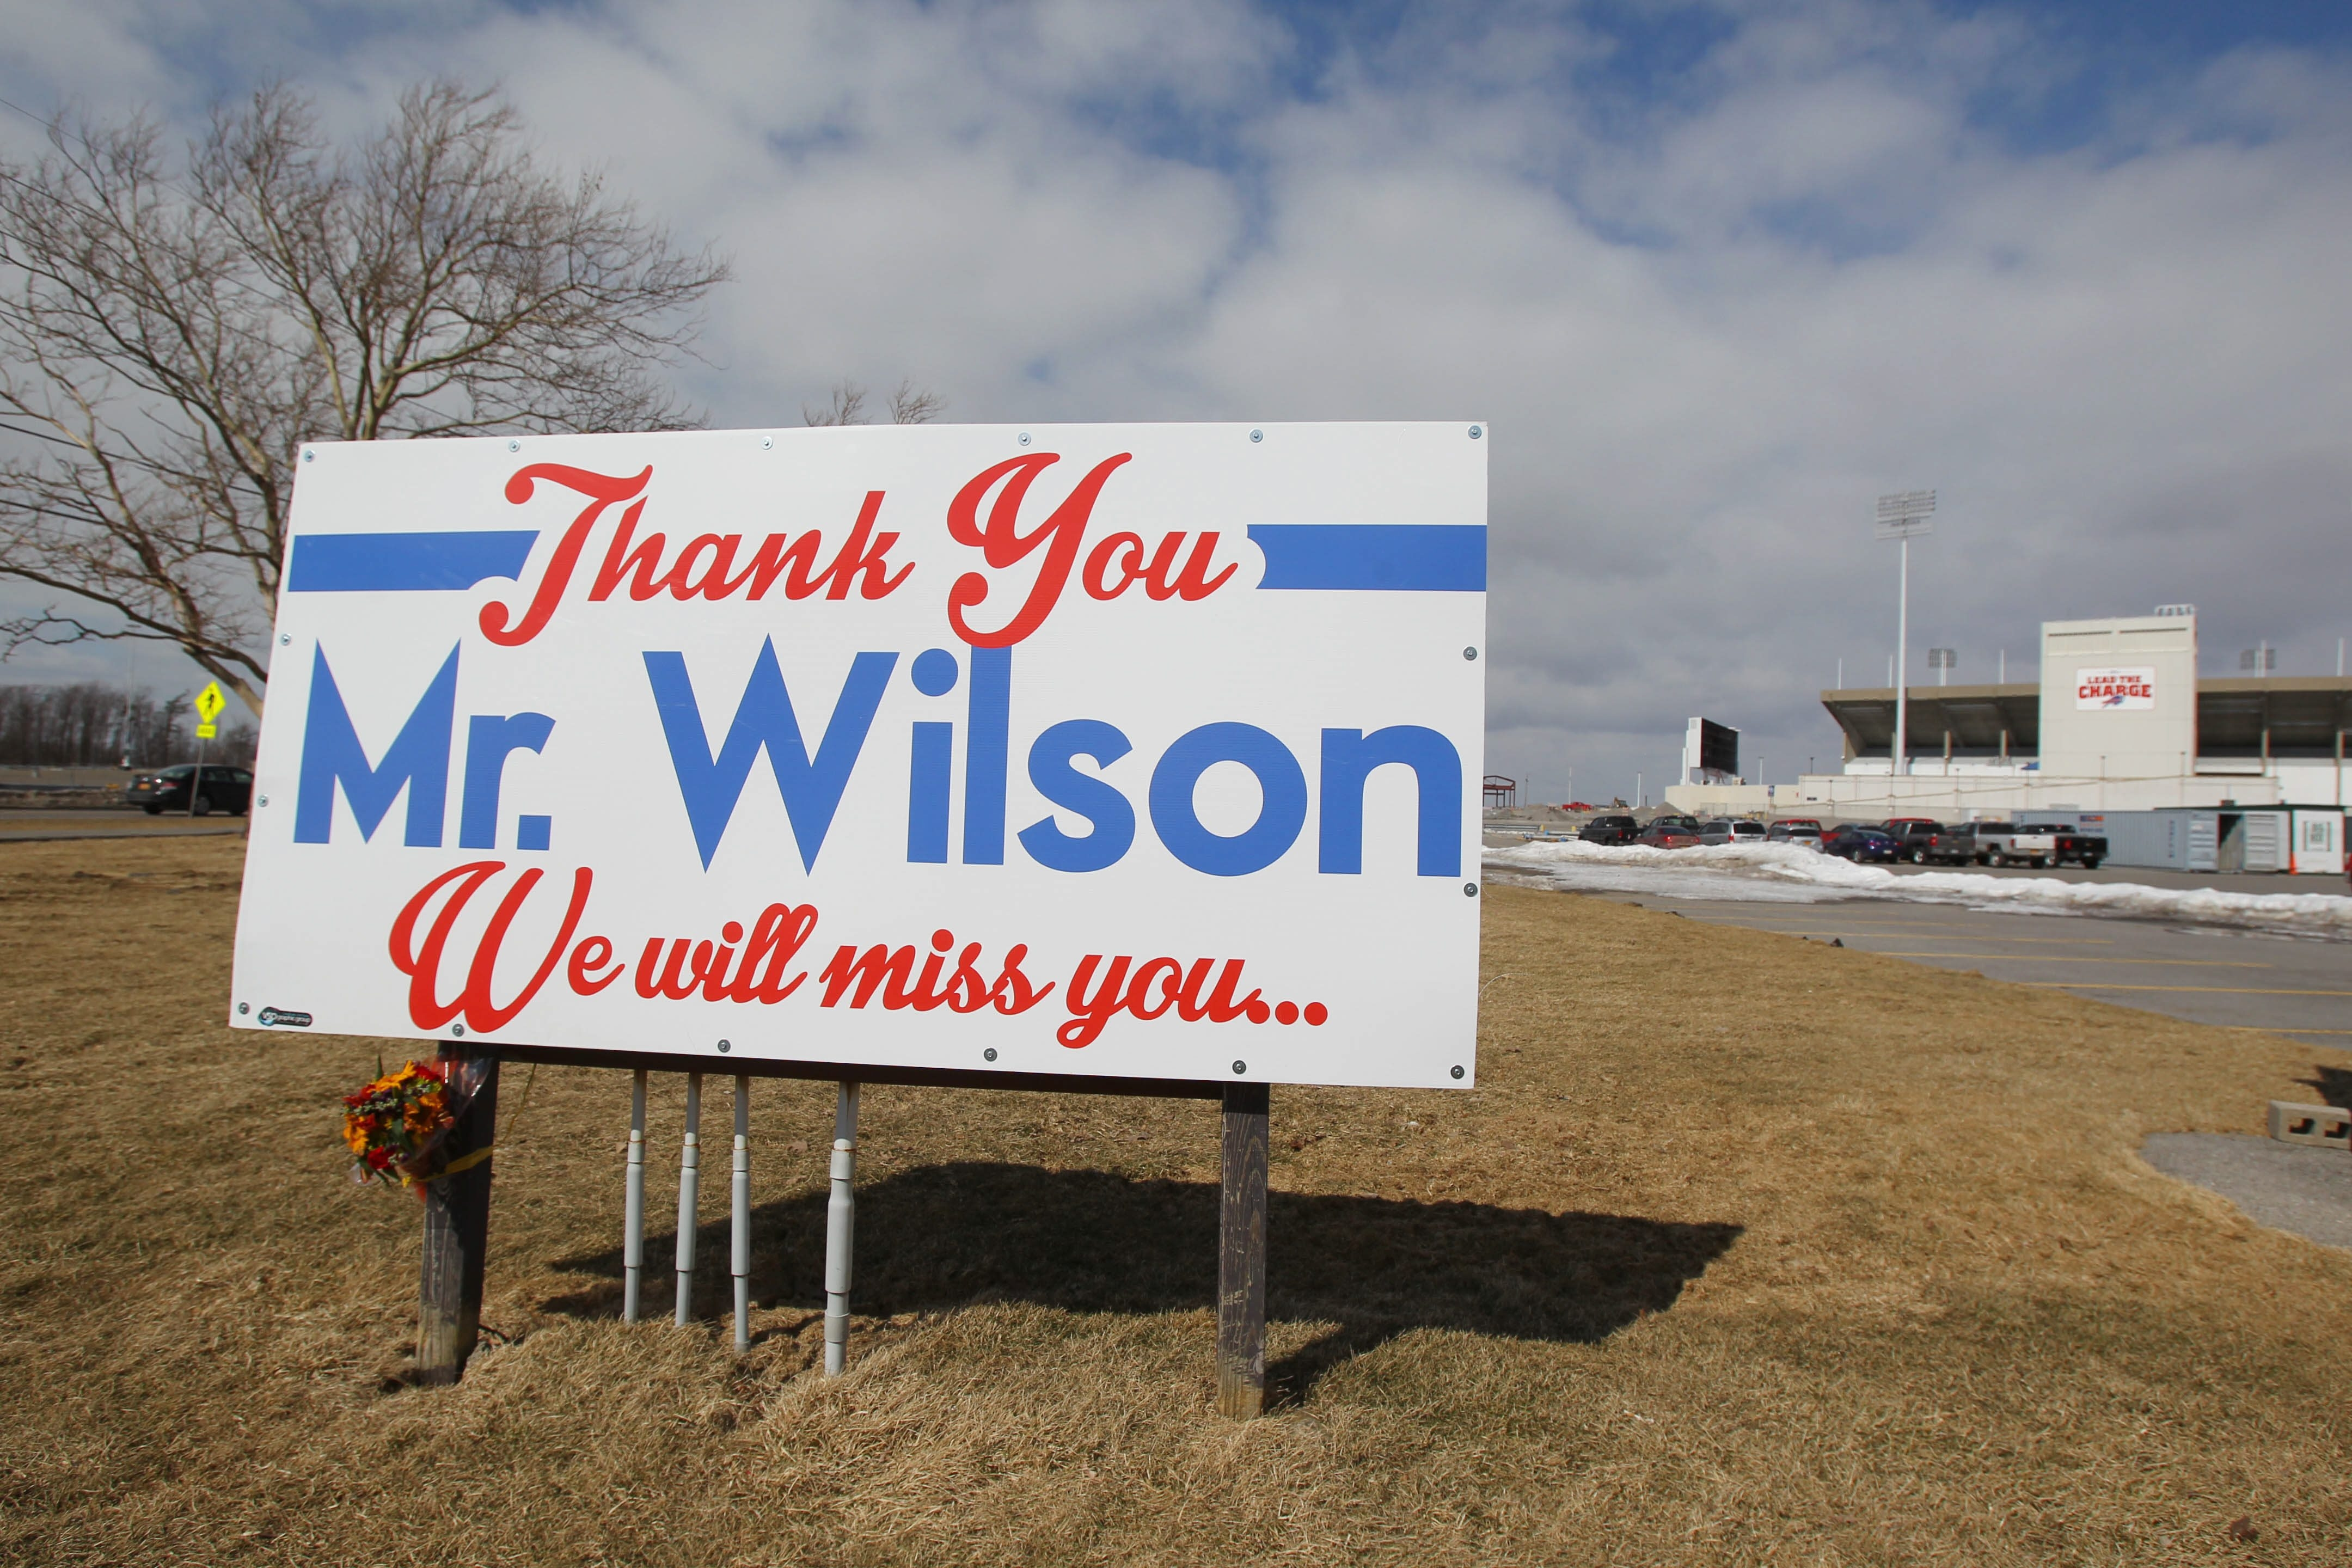 This sign was put up at the entrance of Ralph Wilson Stadium off Abbott Road in Orchard Park.